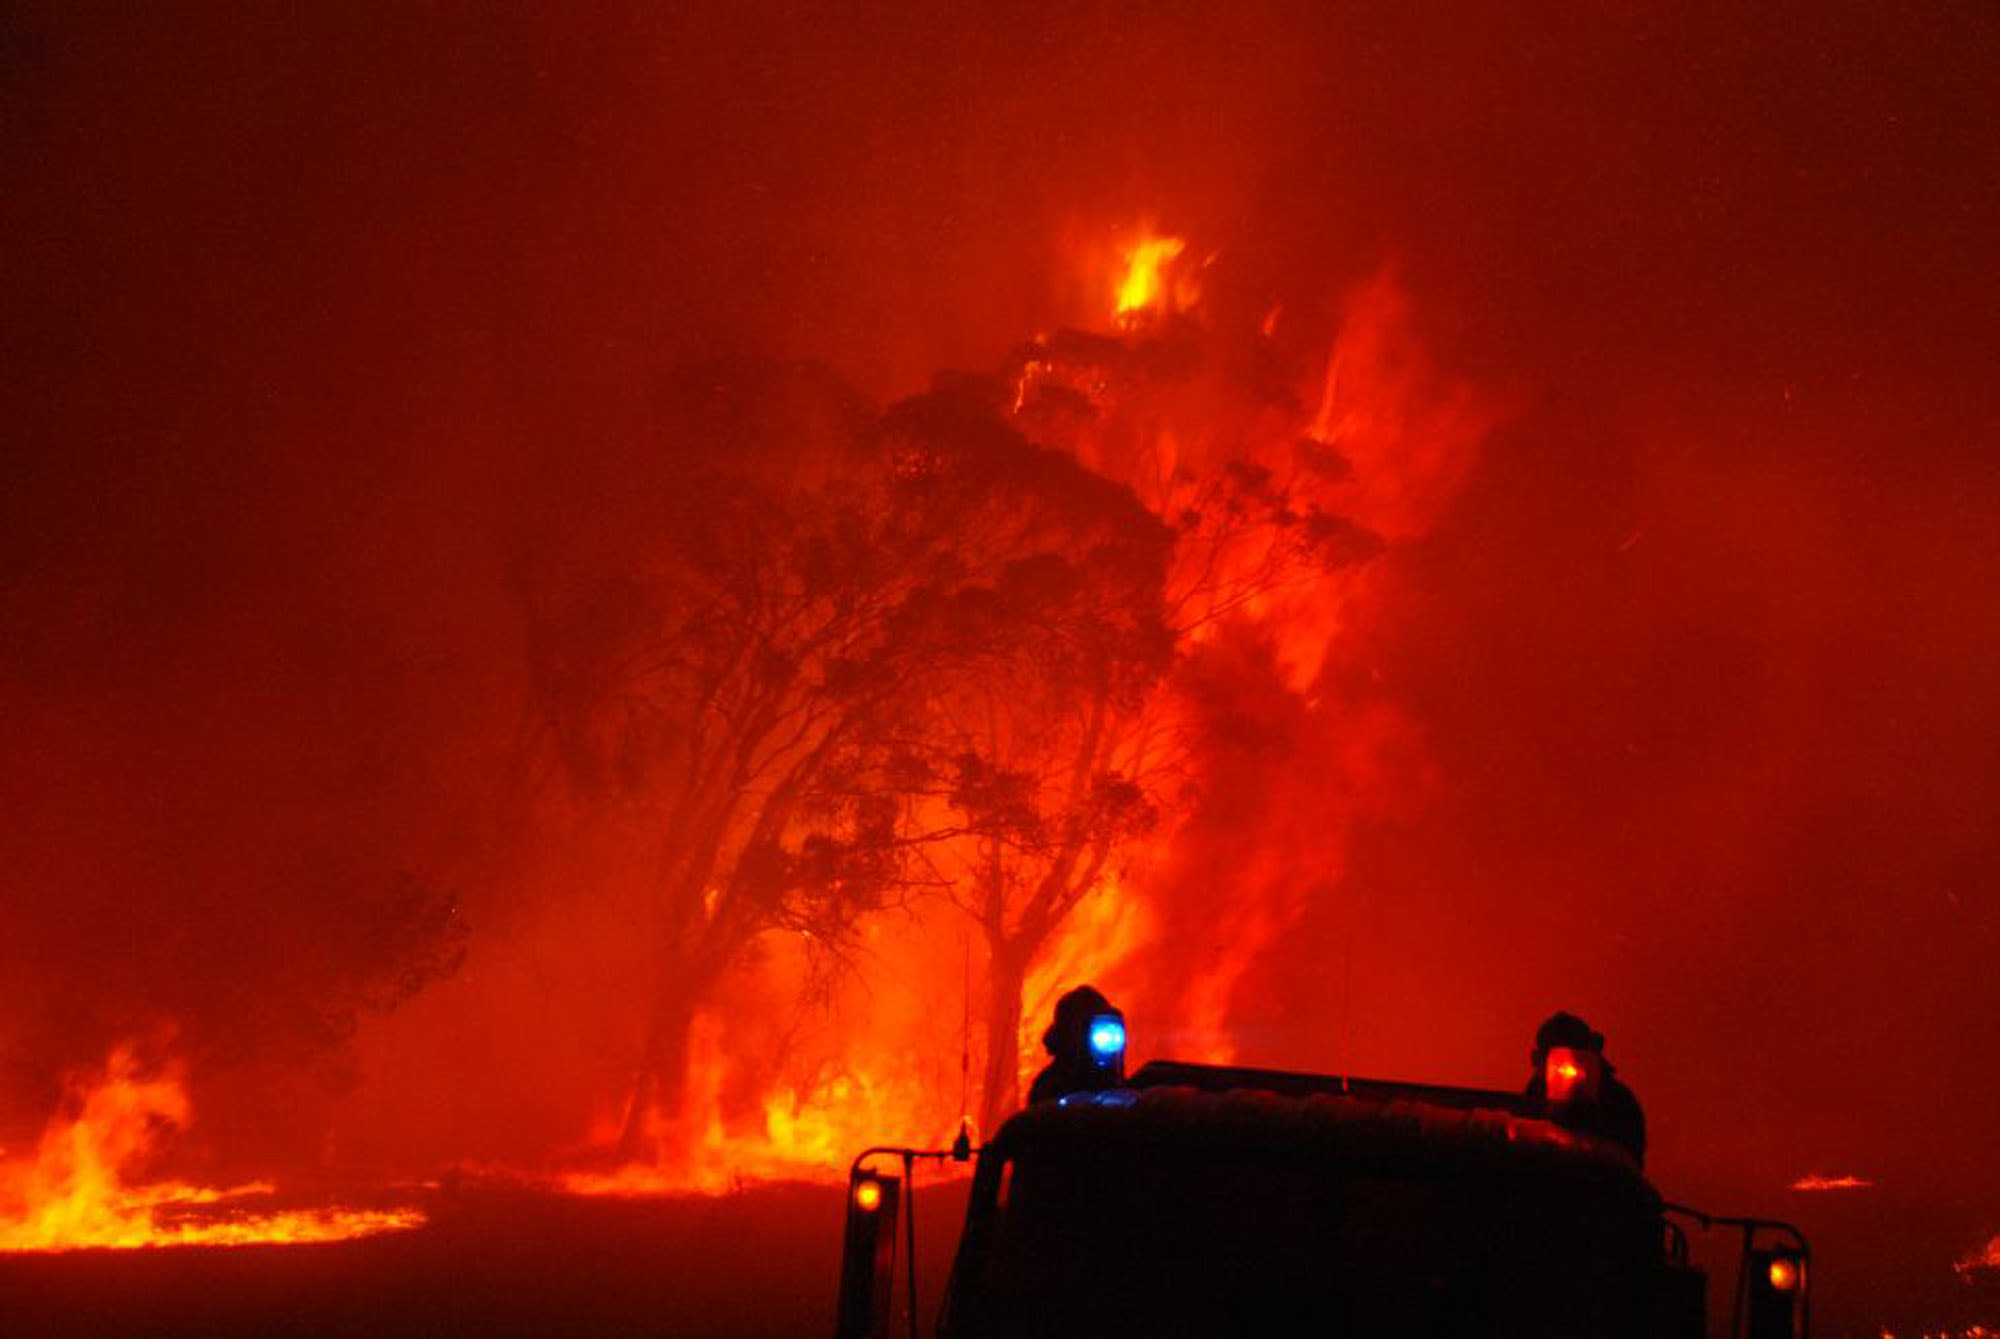 Residents, holidaymakers urged to leave Australian region as fire conditions worsen